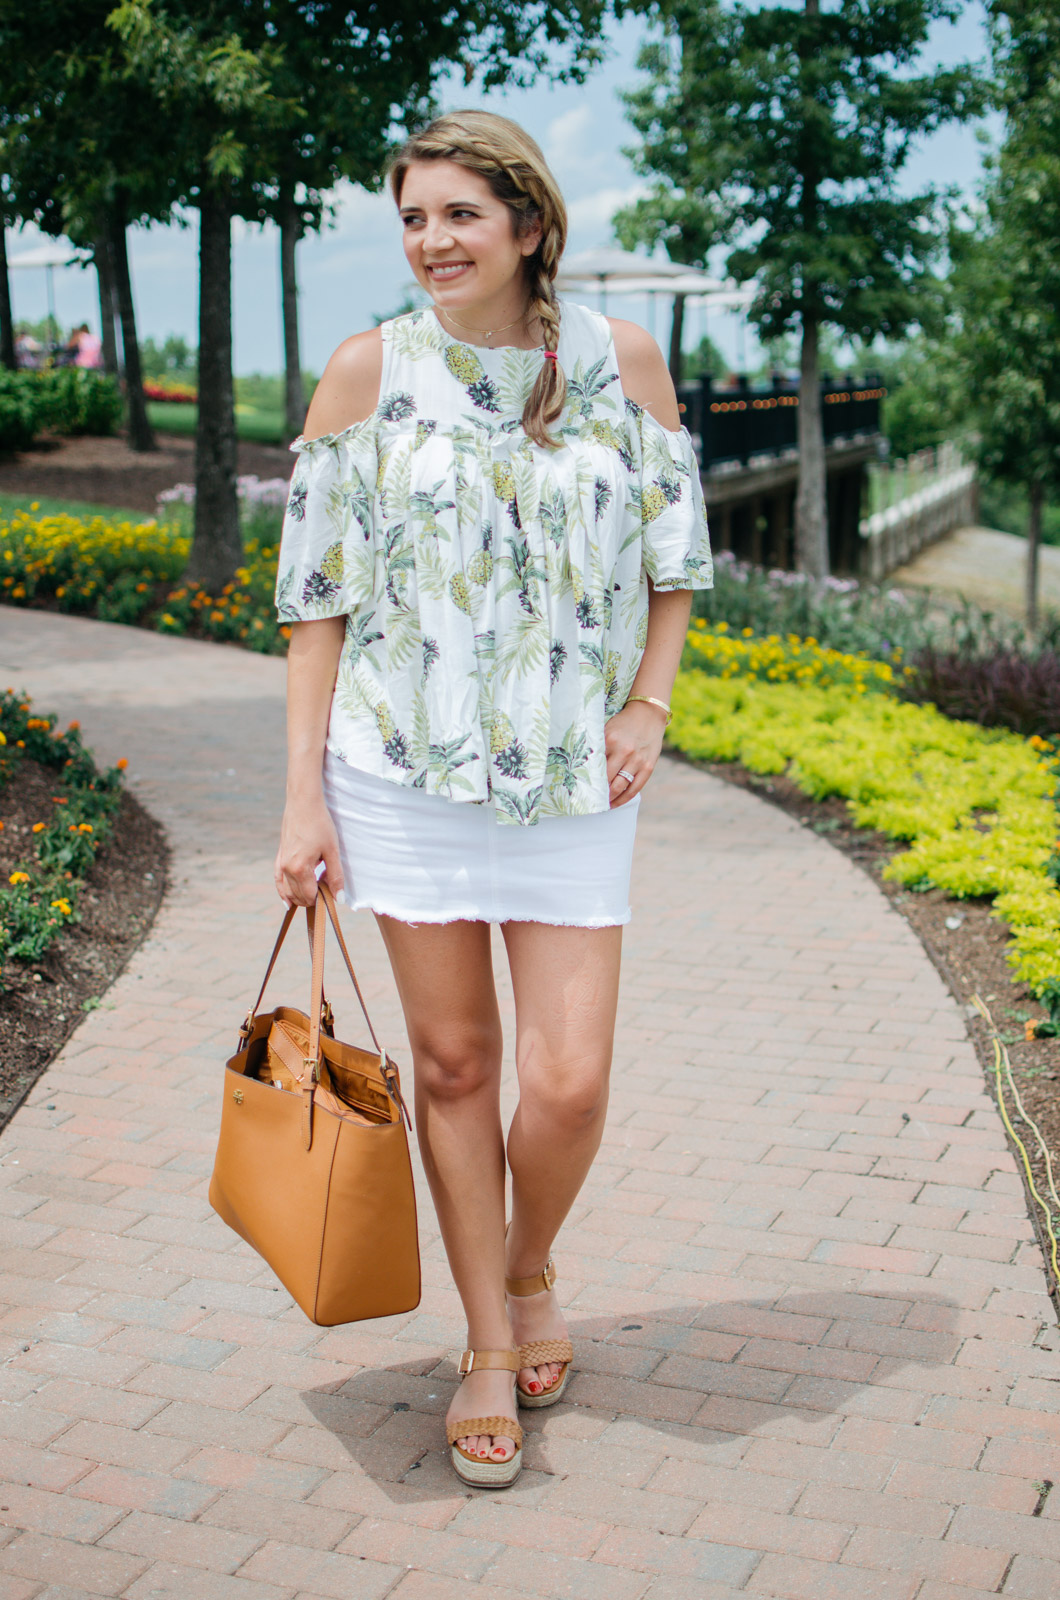 Summer outfit - denim mini skirt + pineapple top | For more of the best Summer outfit ideas, head to bylaurenm.com